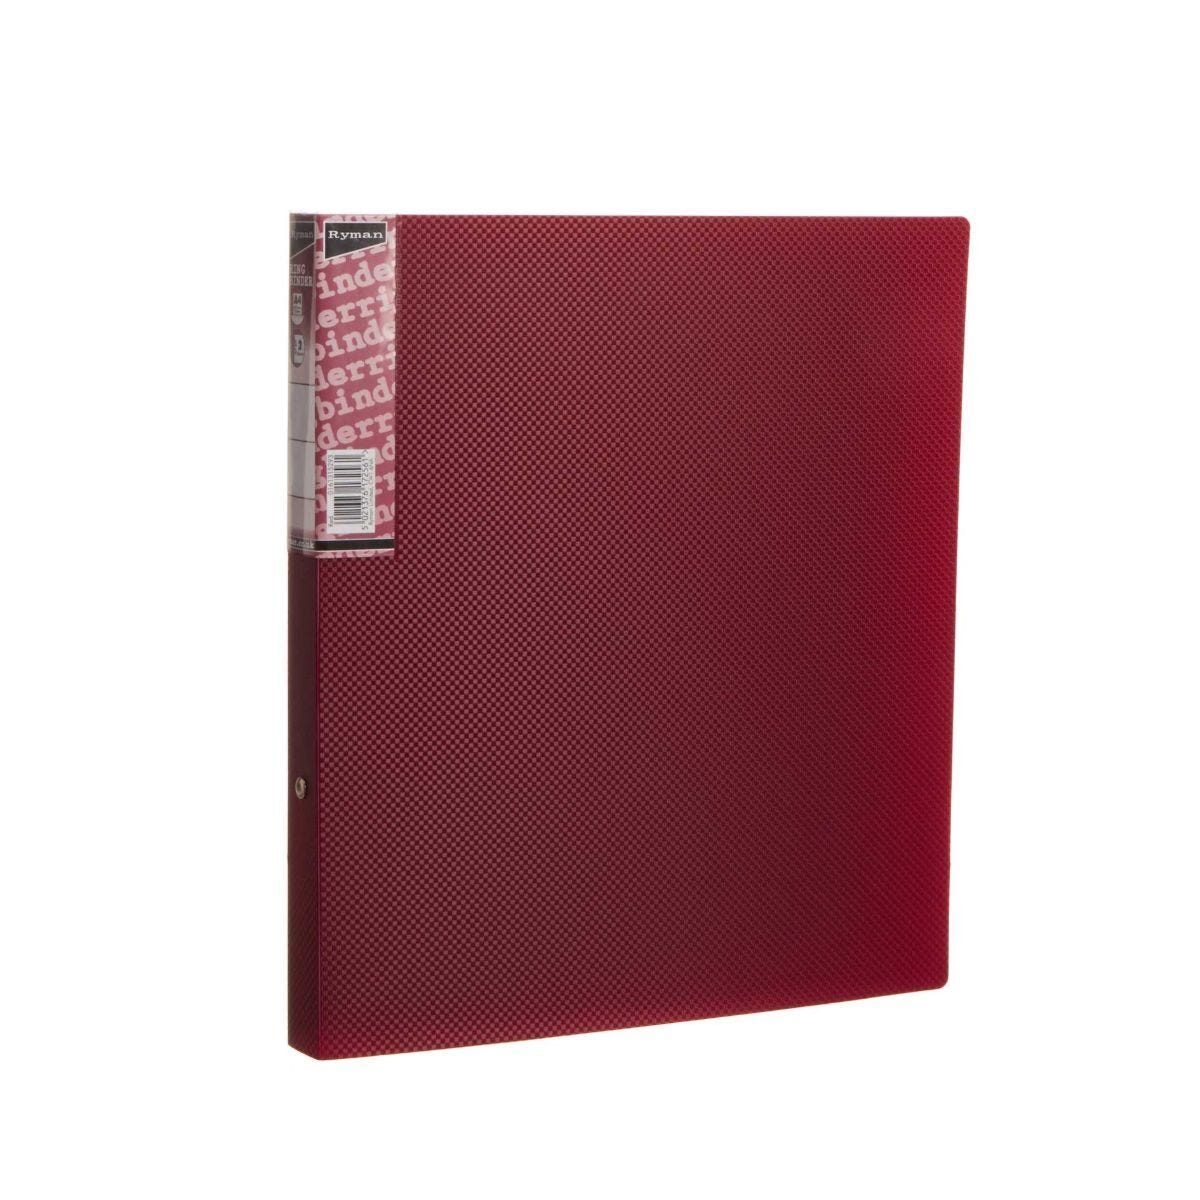 Ryman Ring Binder A4 16mm Burgundy